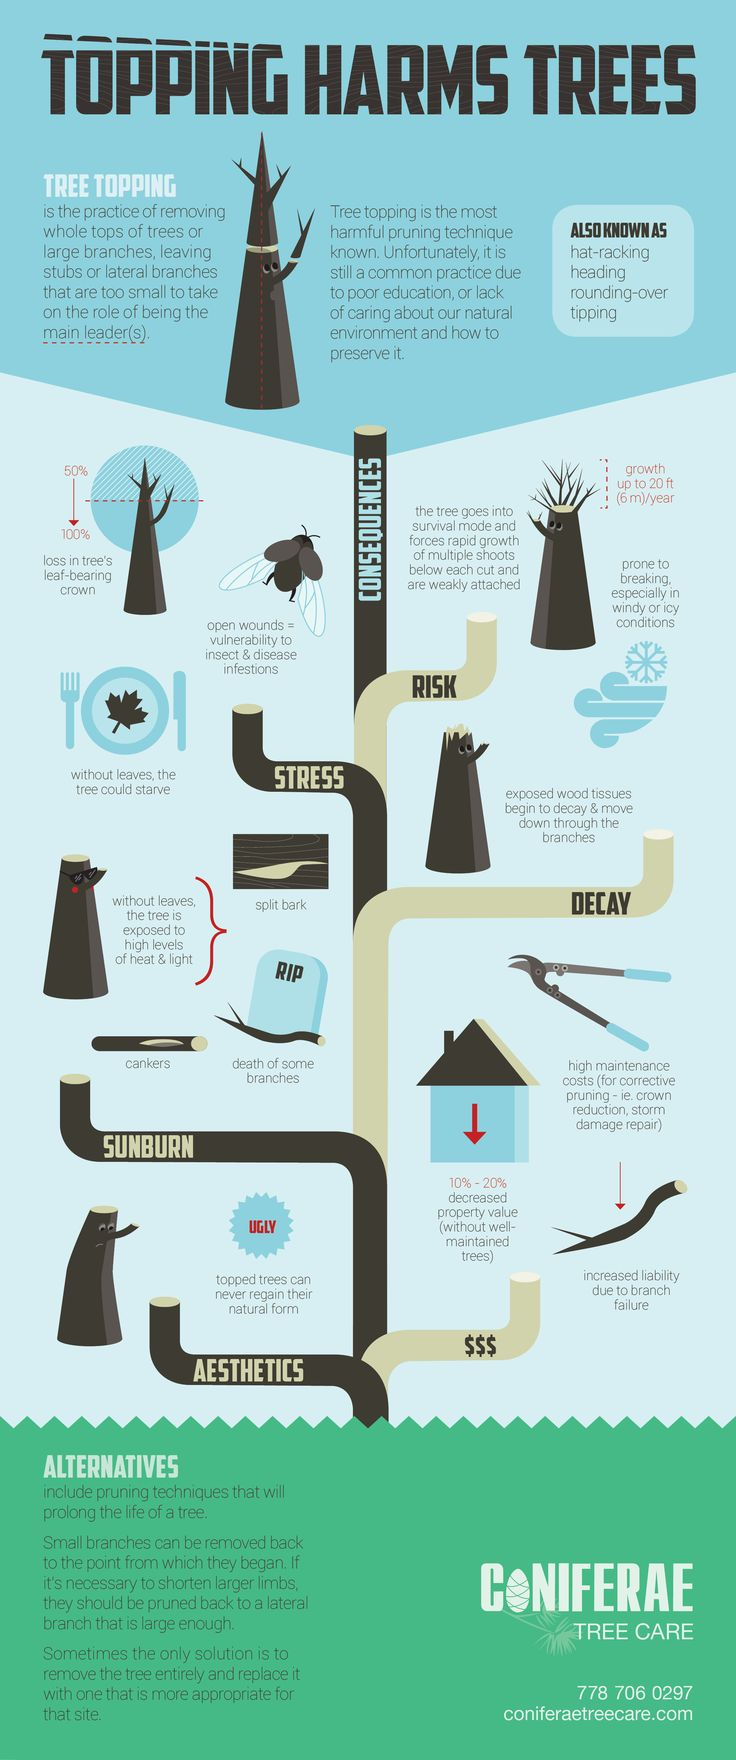 Topping Harms Trees   #Infographic #ToppingTrees #Environment